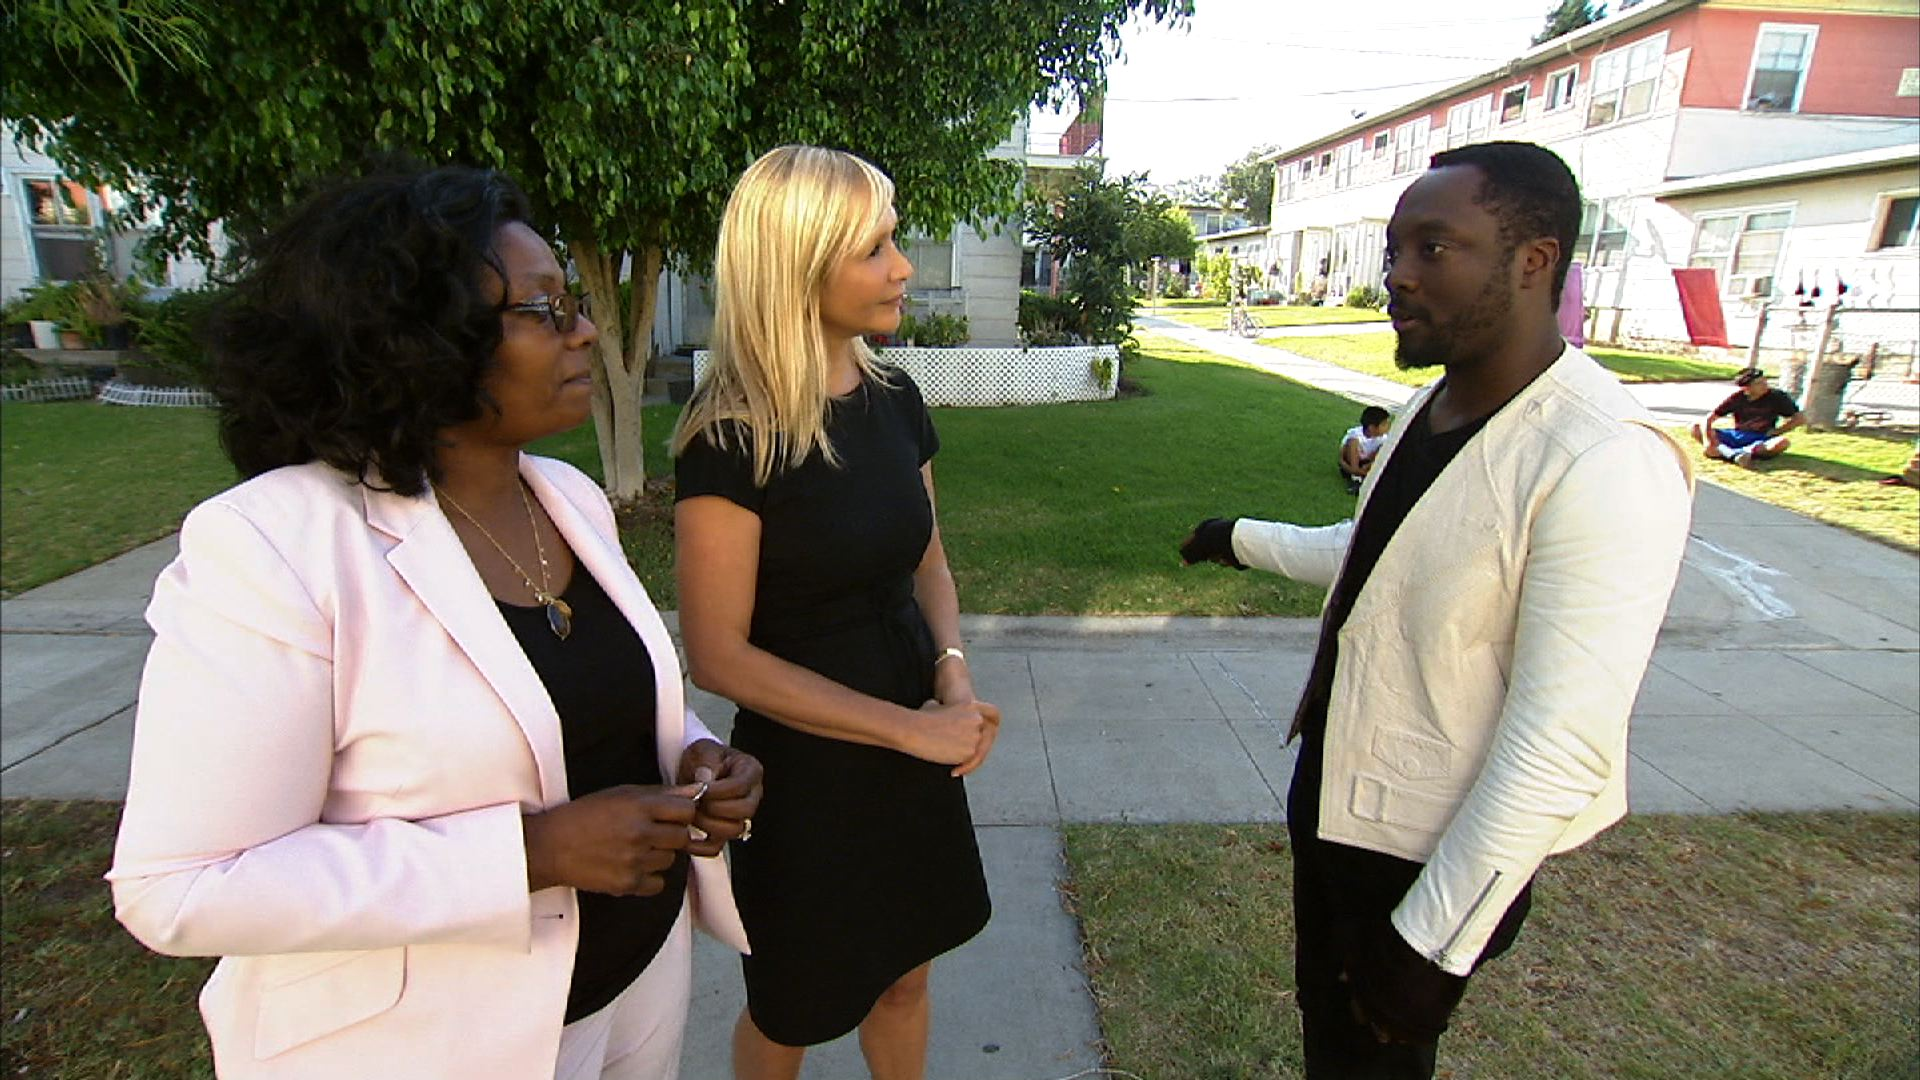 Debra Cain, will.i.am, CNBC's Tania Bryer at Estrada Courts